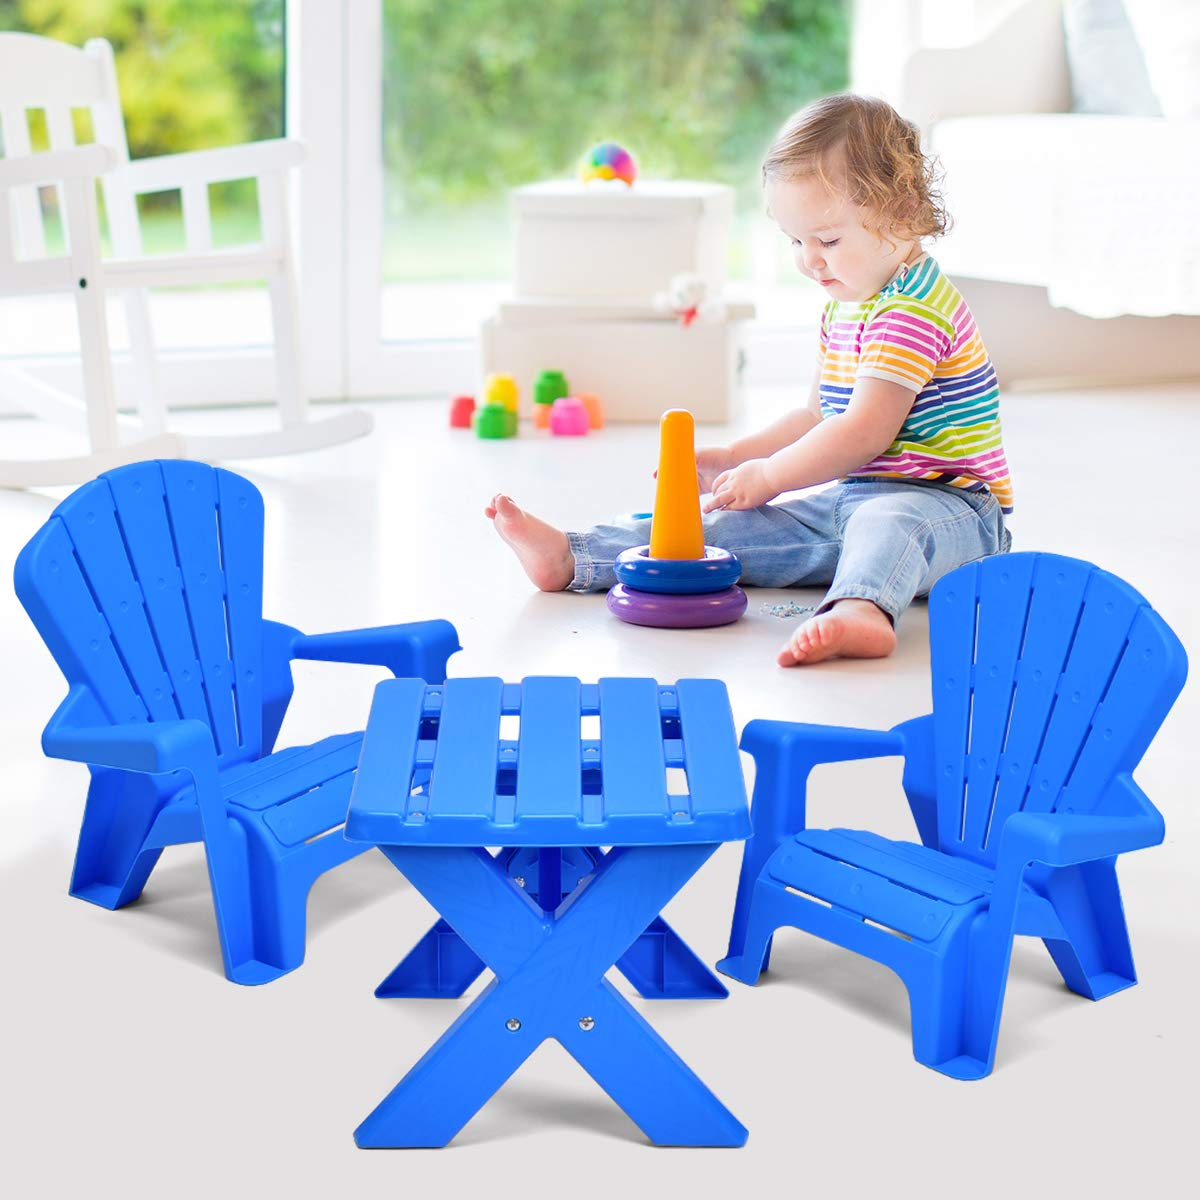 Costzon Kids Plastic Table and 2 Chairs Set, Adirondack Chair for Indoor & Outdoor Garden, Patio, Beach, Home, Toddlers Boys & Girls Activity Craft Table Set (Blue) by Costzon